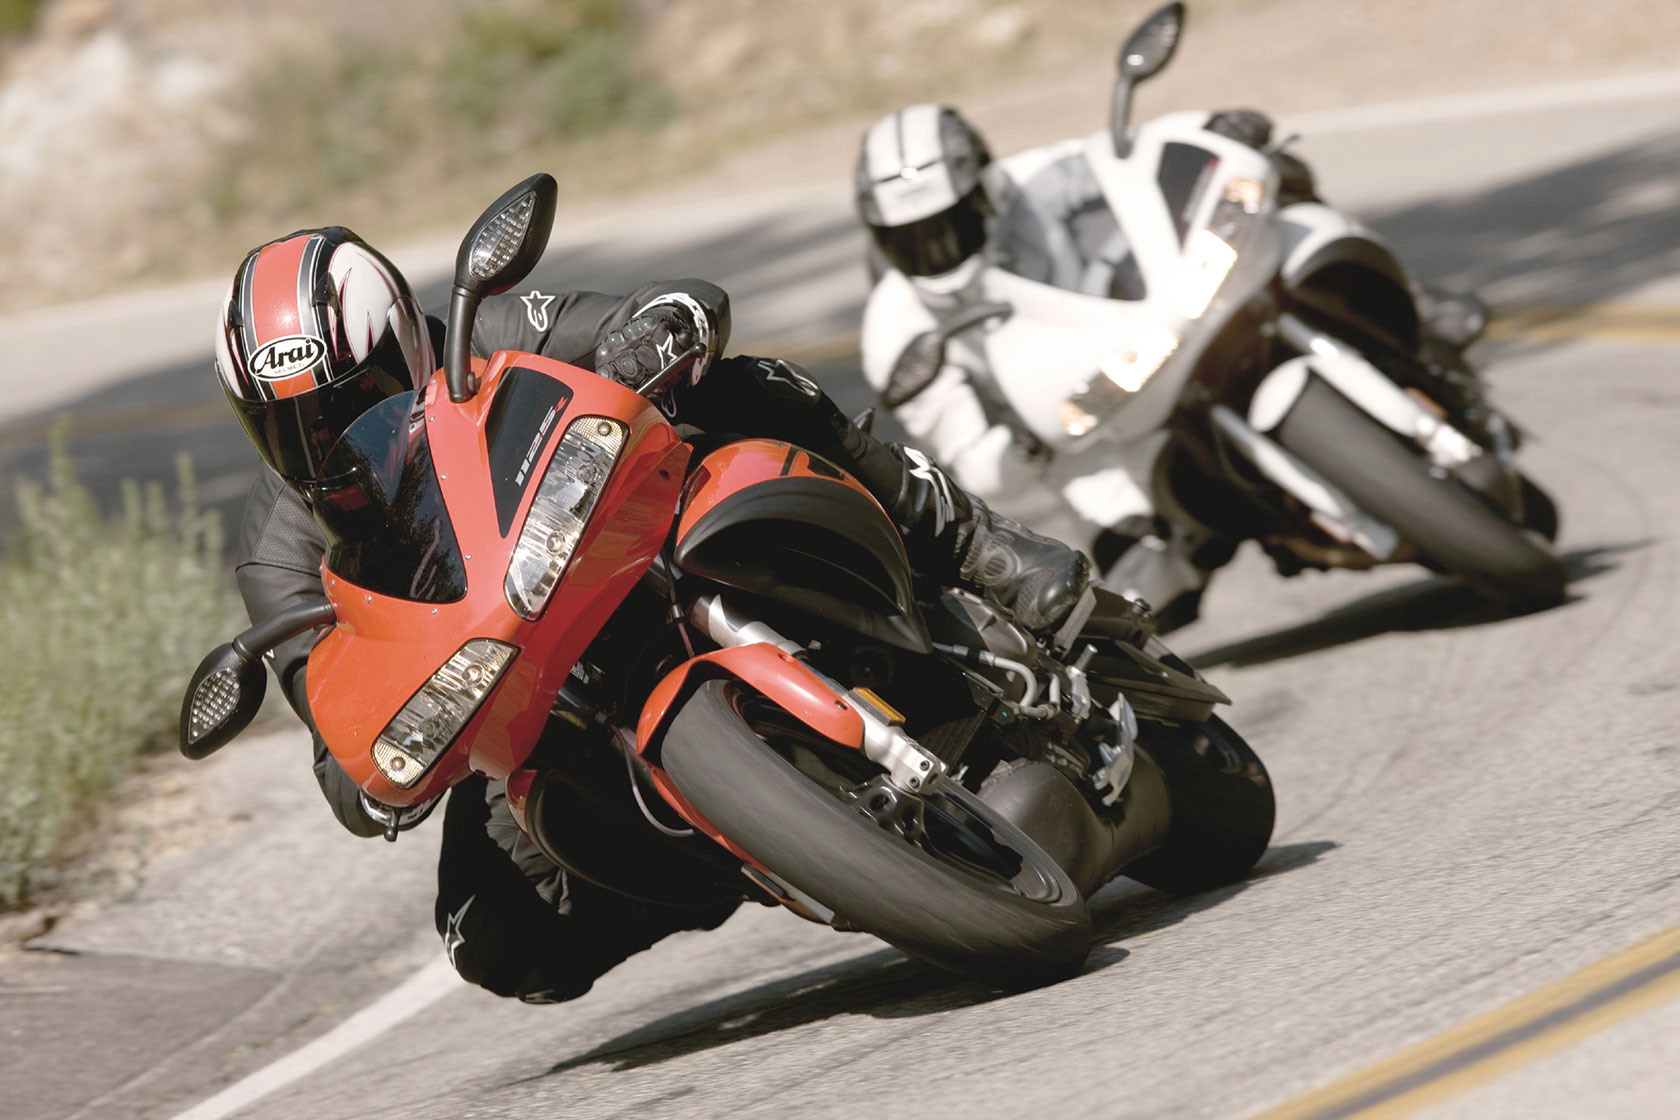 Buell 1125 CR images #66496